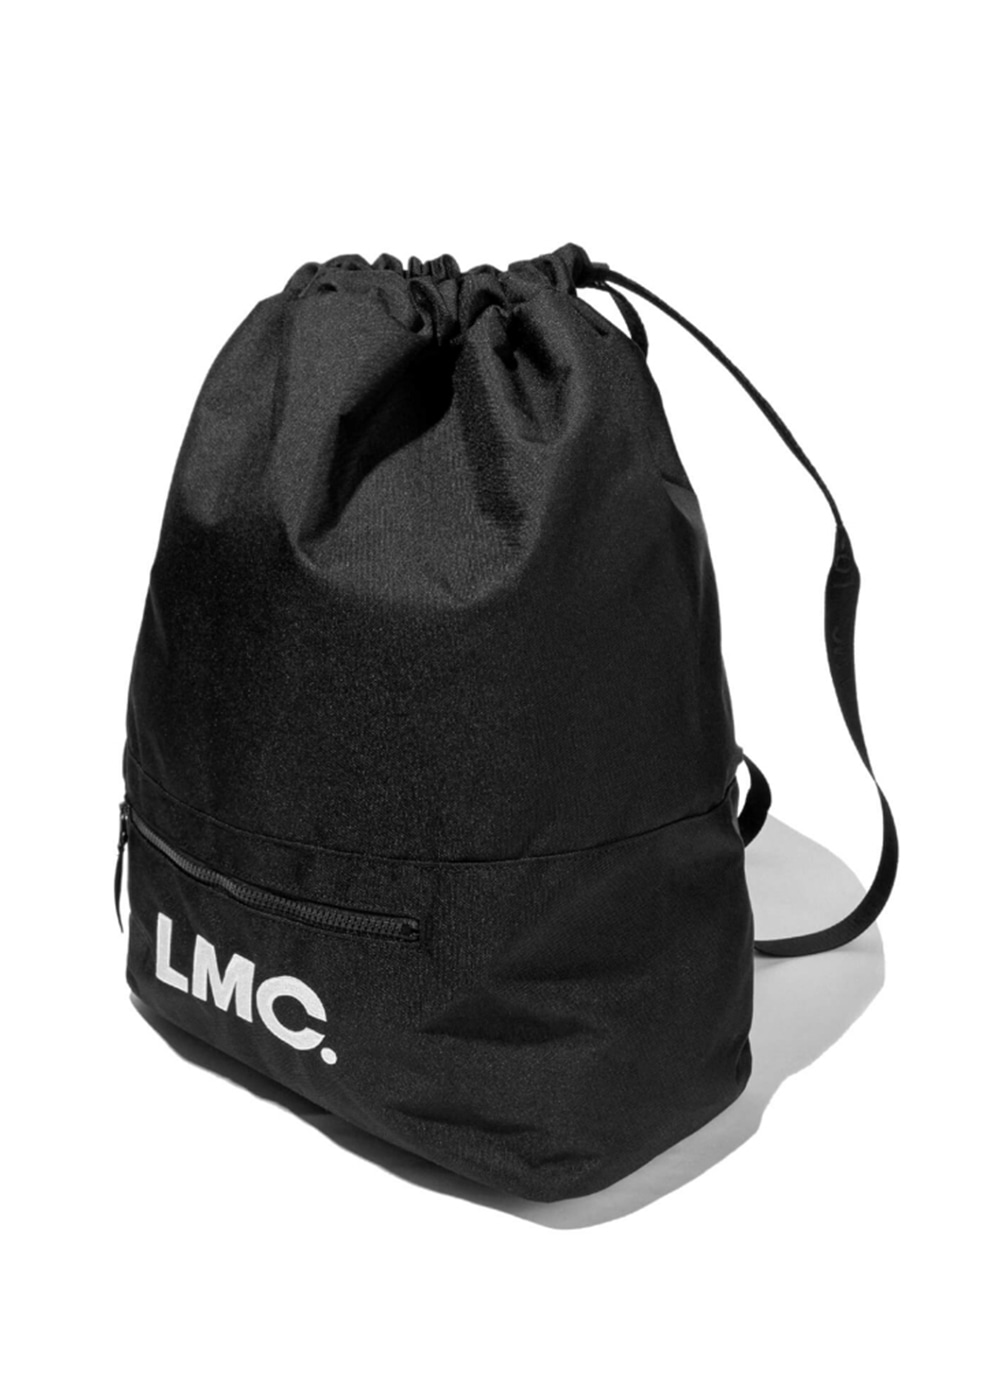 LMC GYM BAG black